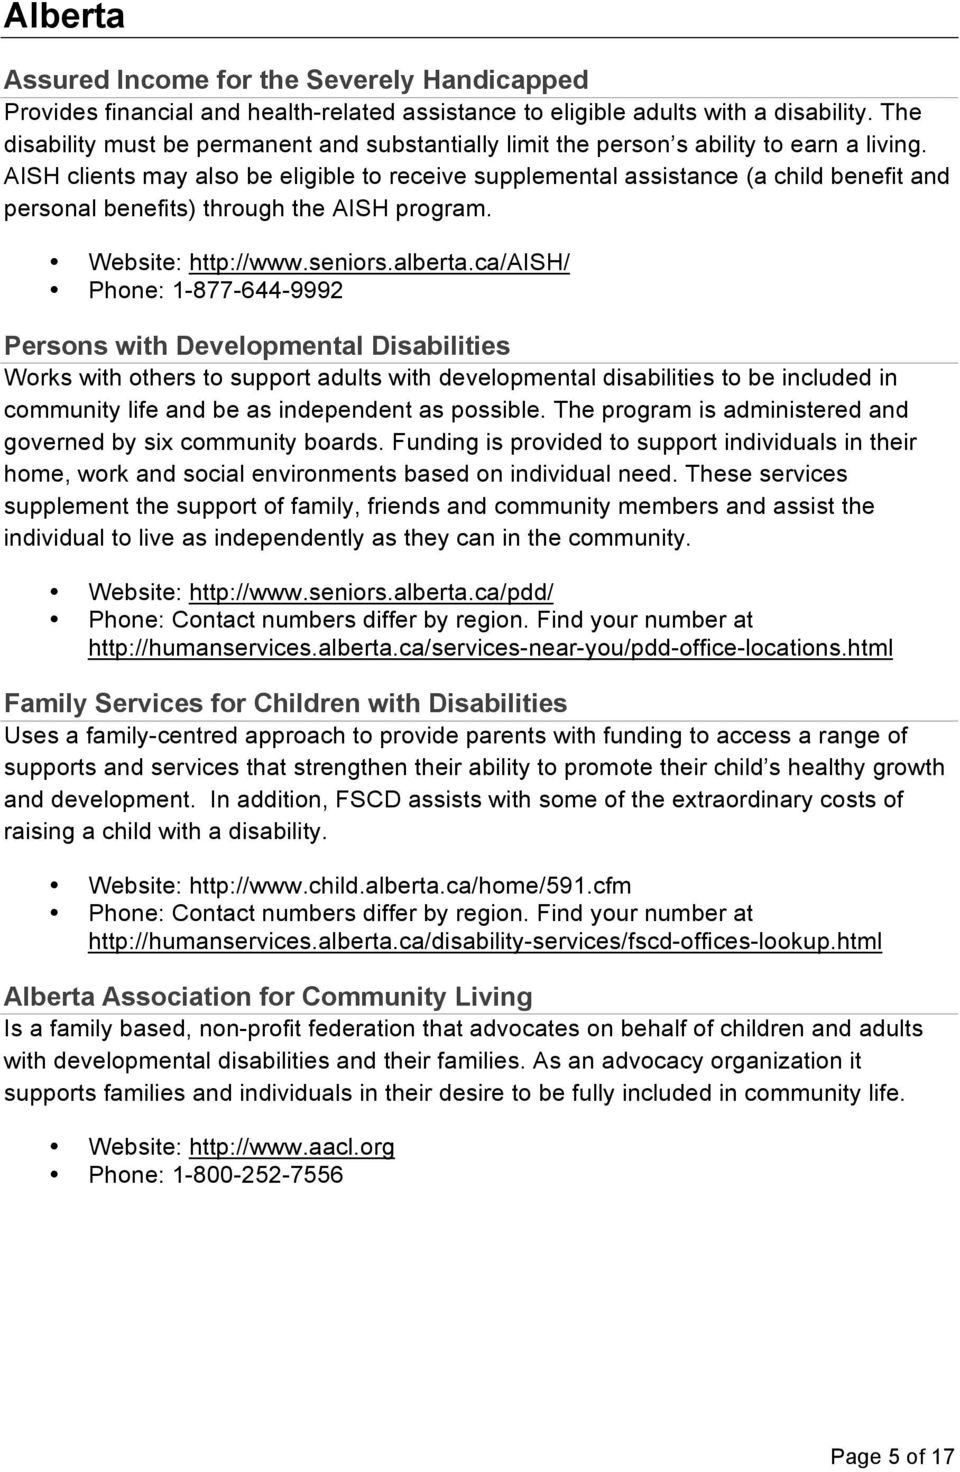 AISH clients may also be eligible to receive supplemental assistance (a child benefit and personal benefits) through the AISH program. Website: http://www.seniors.alberta.